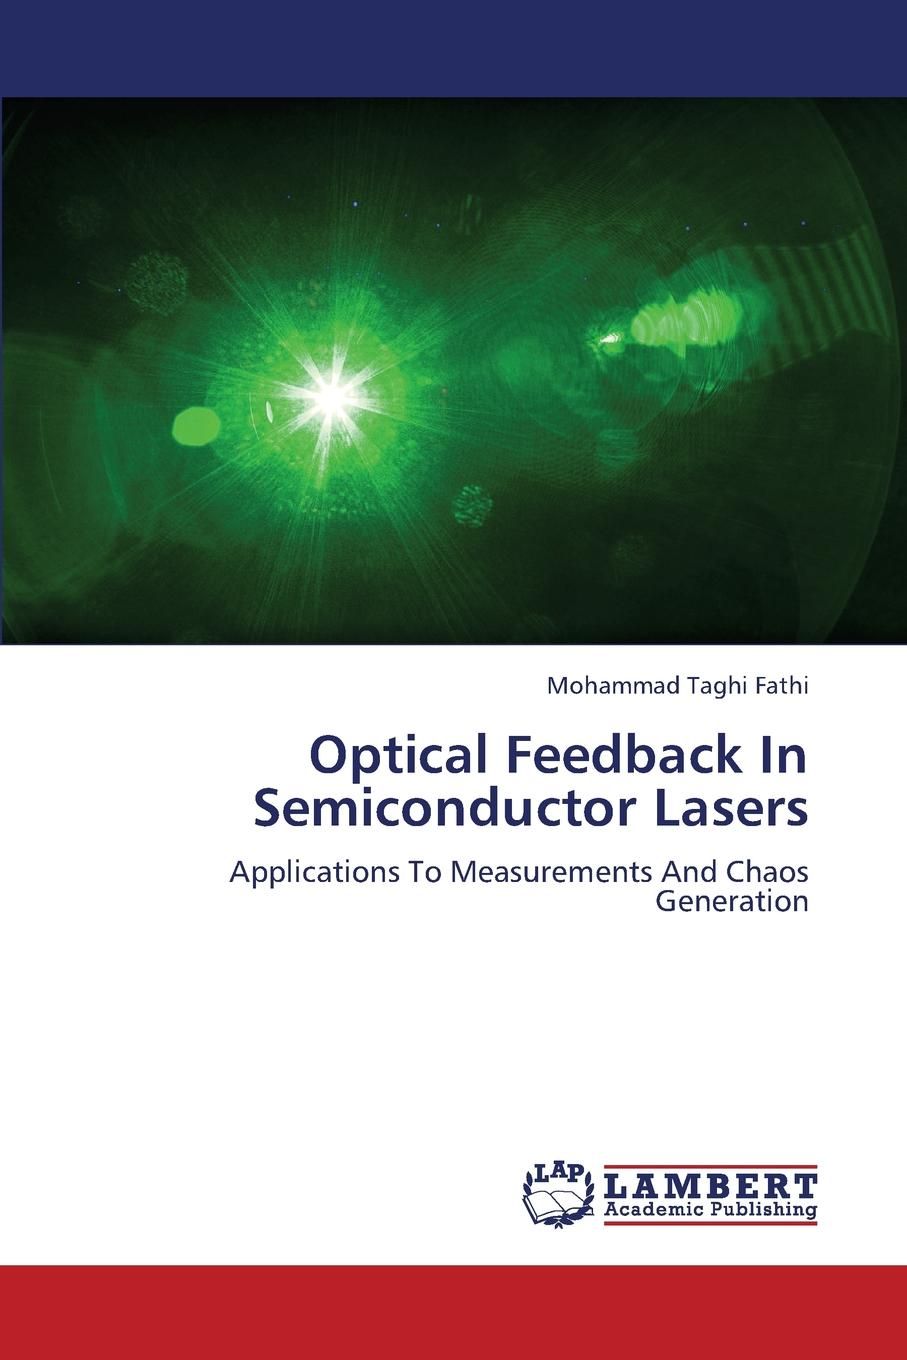 Fathi Mohammad Taghi Optical Feedback in Semiconductor Lasers kazi hussain a study of copper indium di sulfide semiconductor thin films